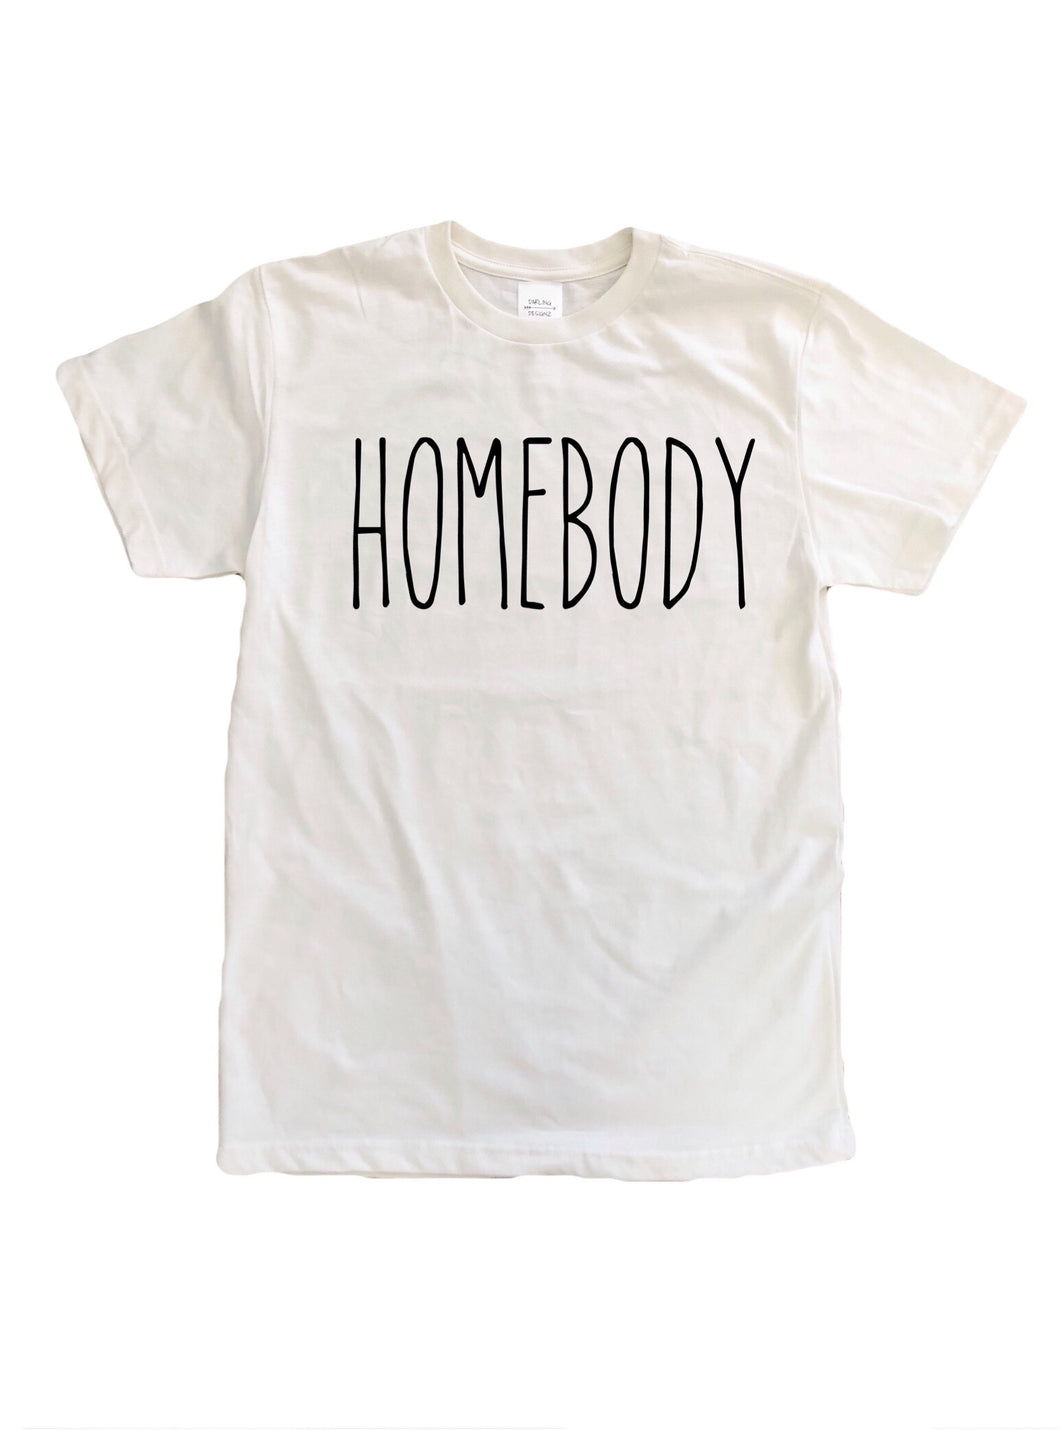 Homebody ladies tshirt in cream